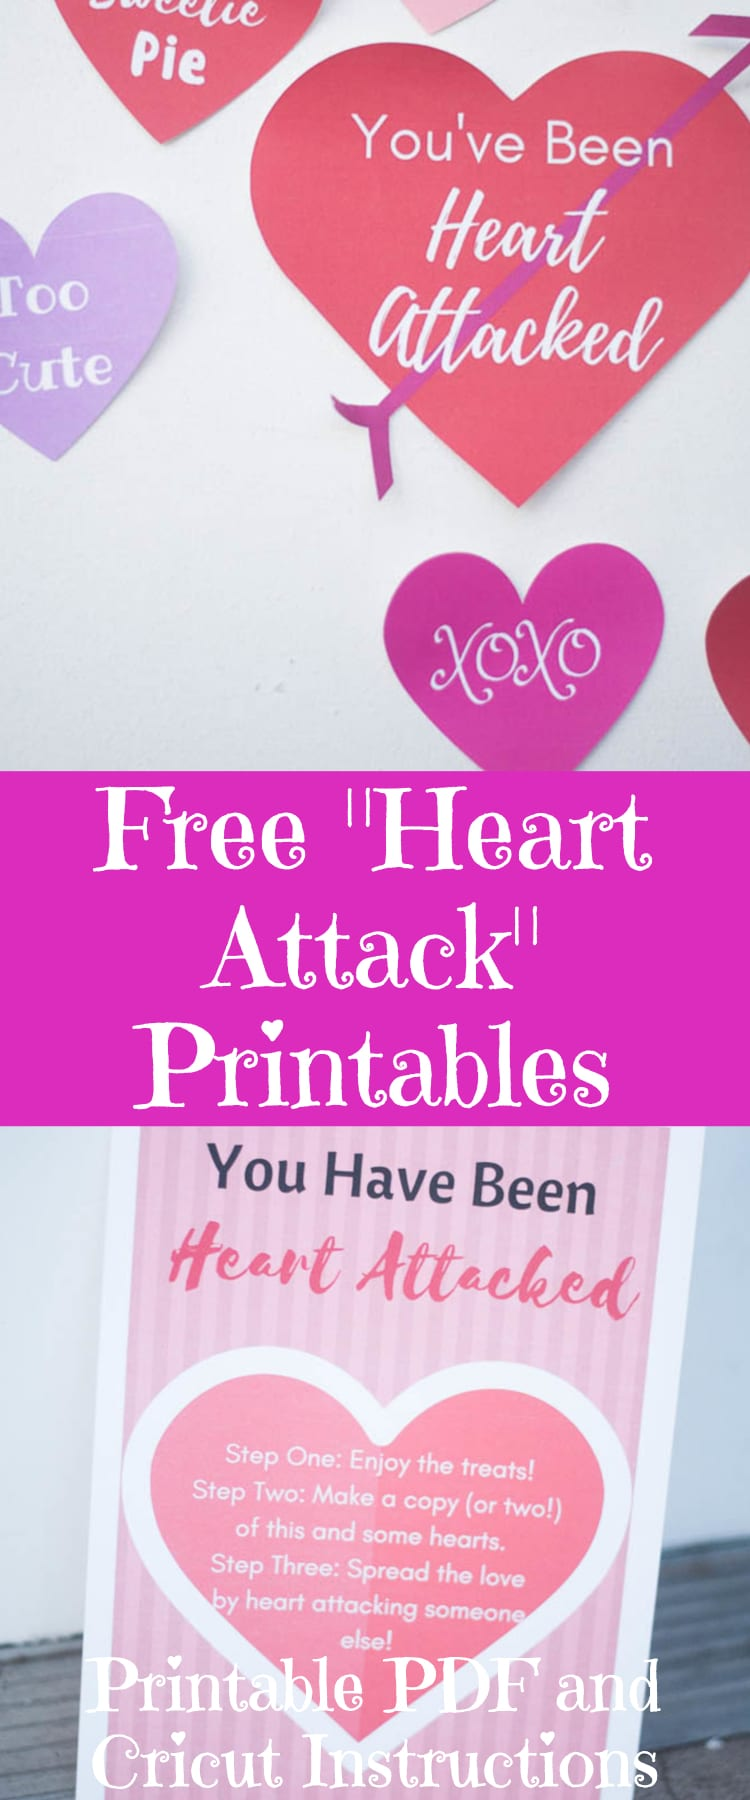 Free Heart Attack Printables / Valentine's Day Printable / Love Printables / Cricut Hearts / Cricut Valentine's Day